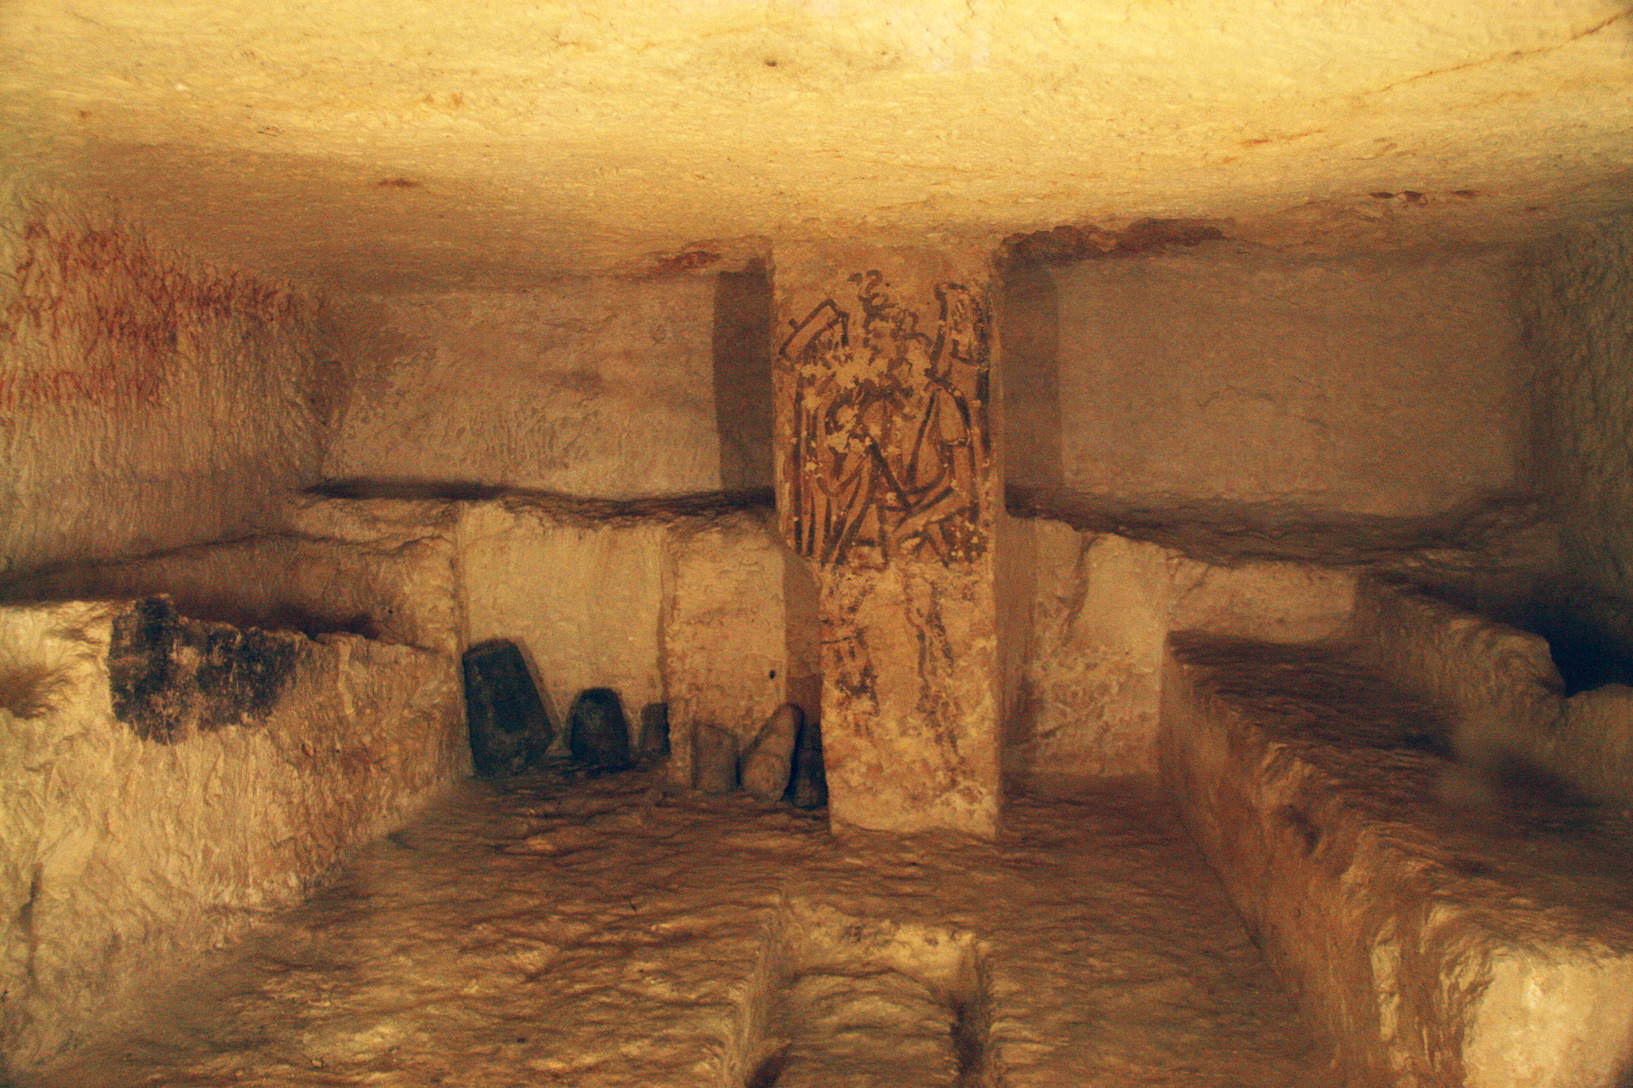 """Tomba 5636"", a different type of tomb. It dates back to the second half of the third century B.C. The graves are carved into stone benches next to the walls."